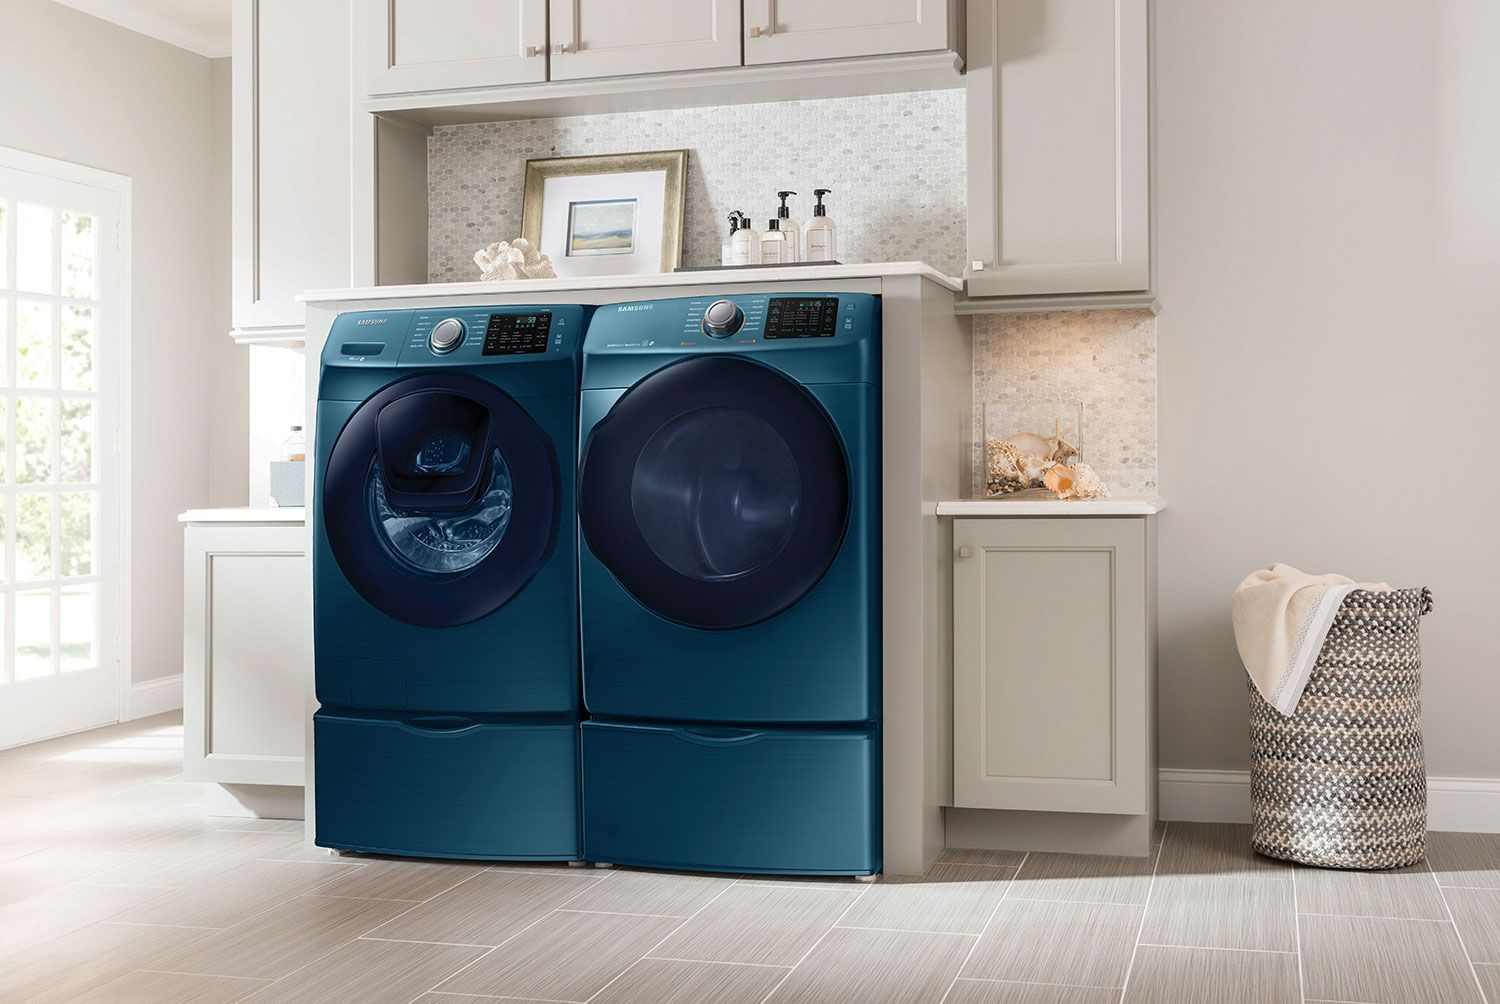 pedestal washer ajmadison cgi inch with pedestals and bin cu front dryer load ft pair laundry samsung